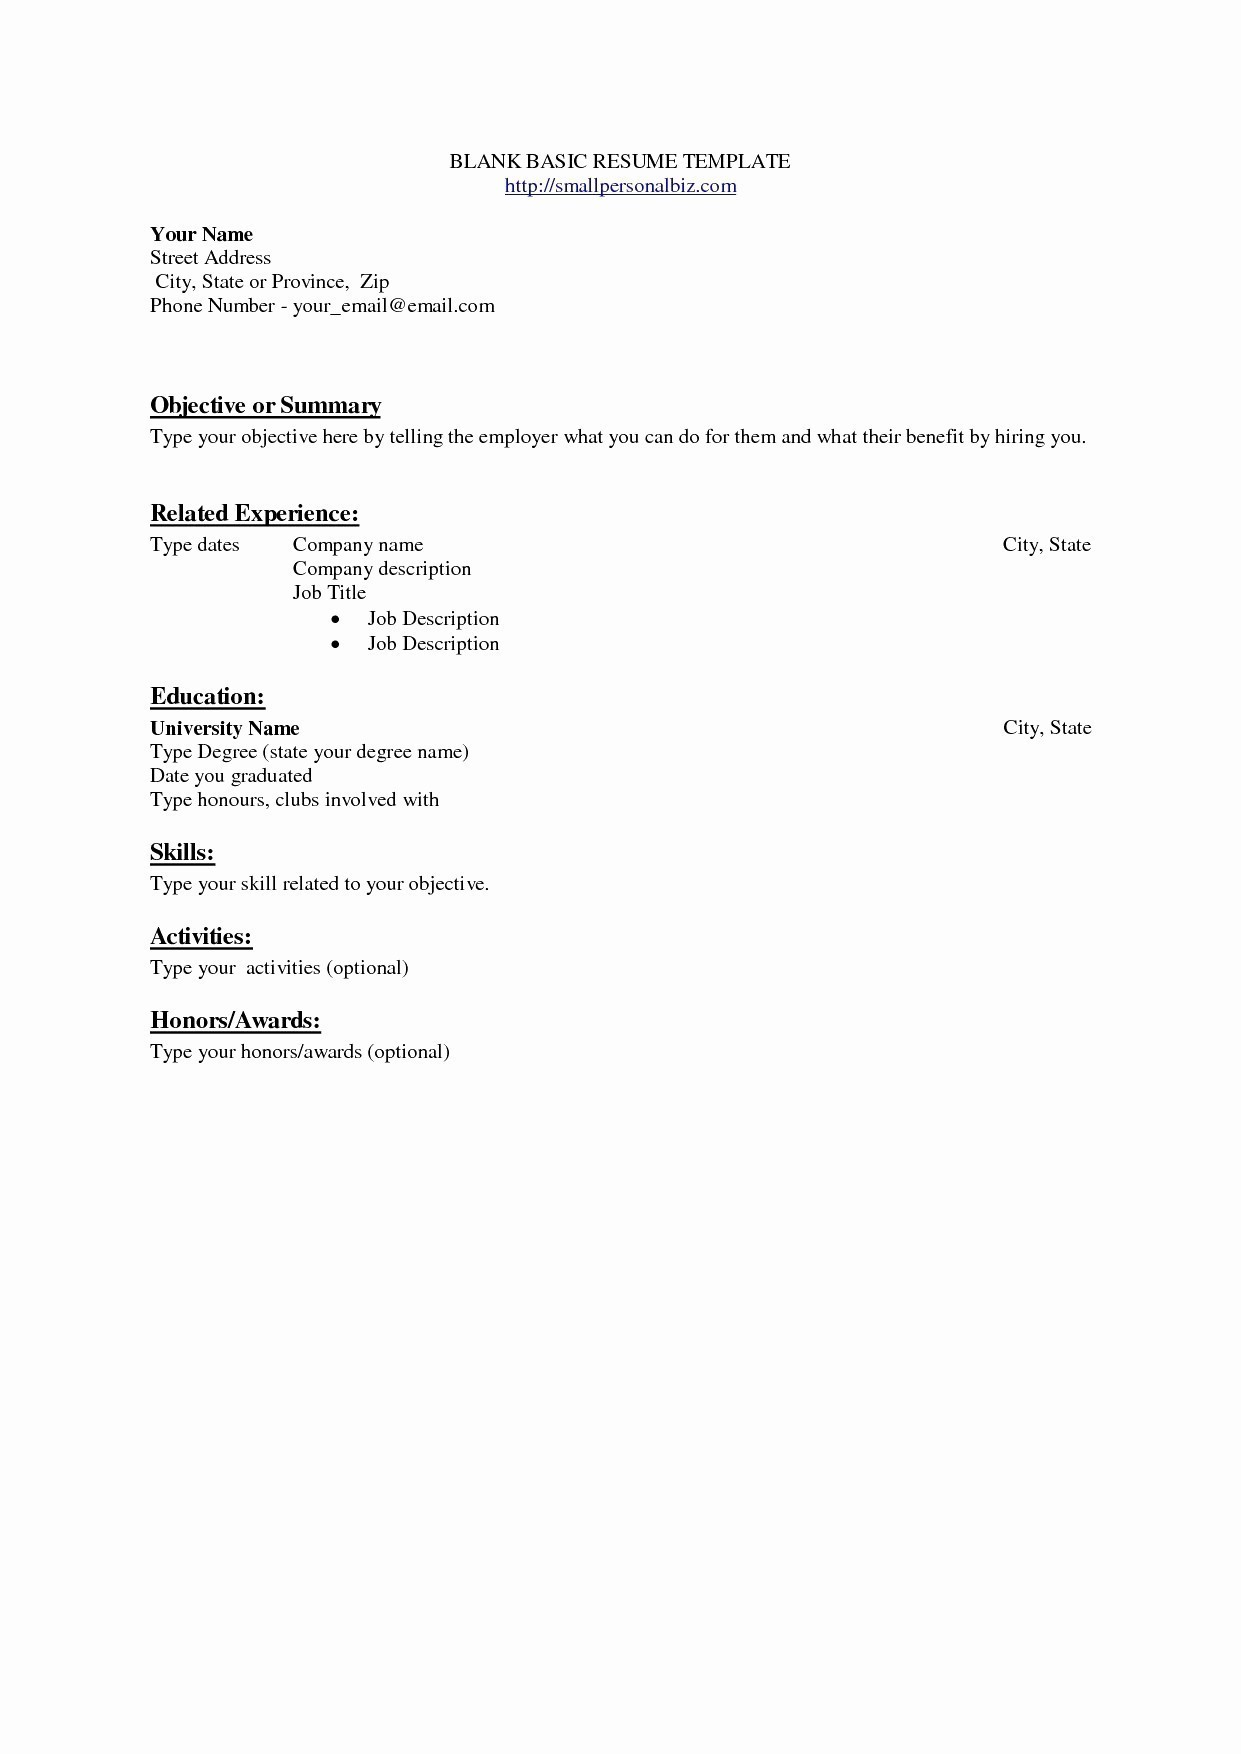 List Of Resume Skills - What Skills to List Resume Fresh Doing A Resume Fresh Fresh